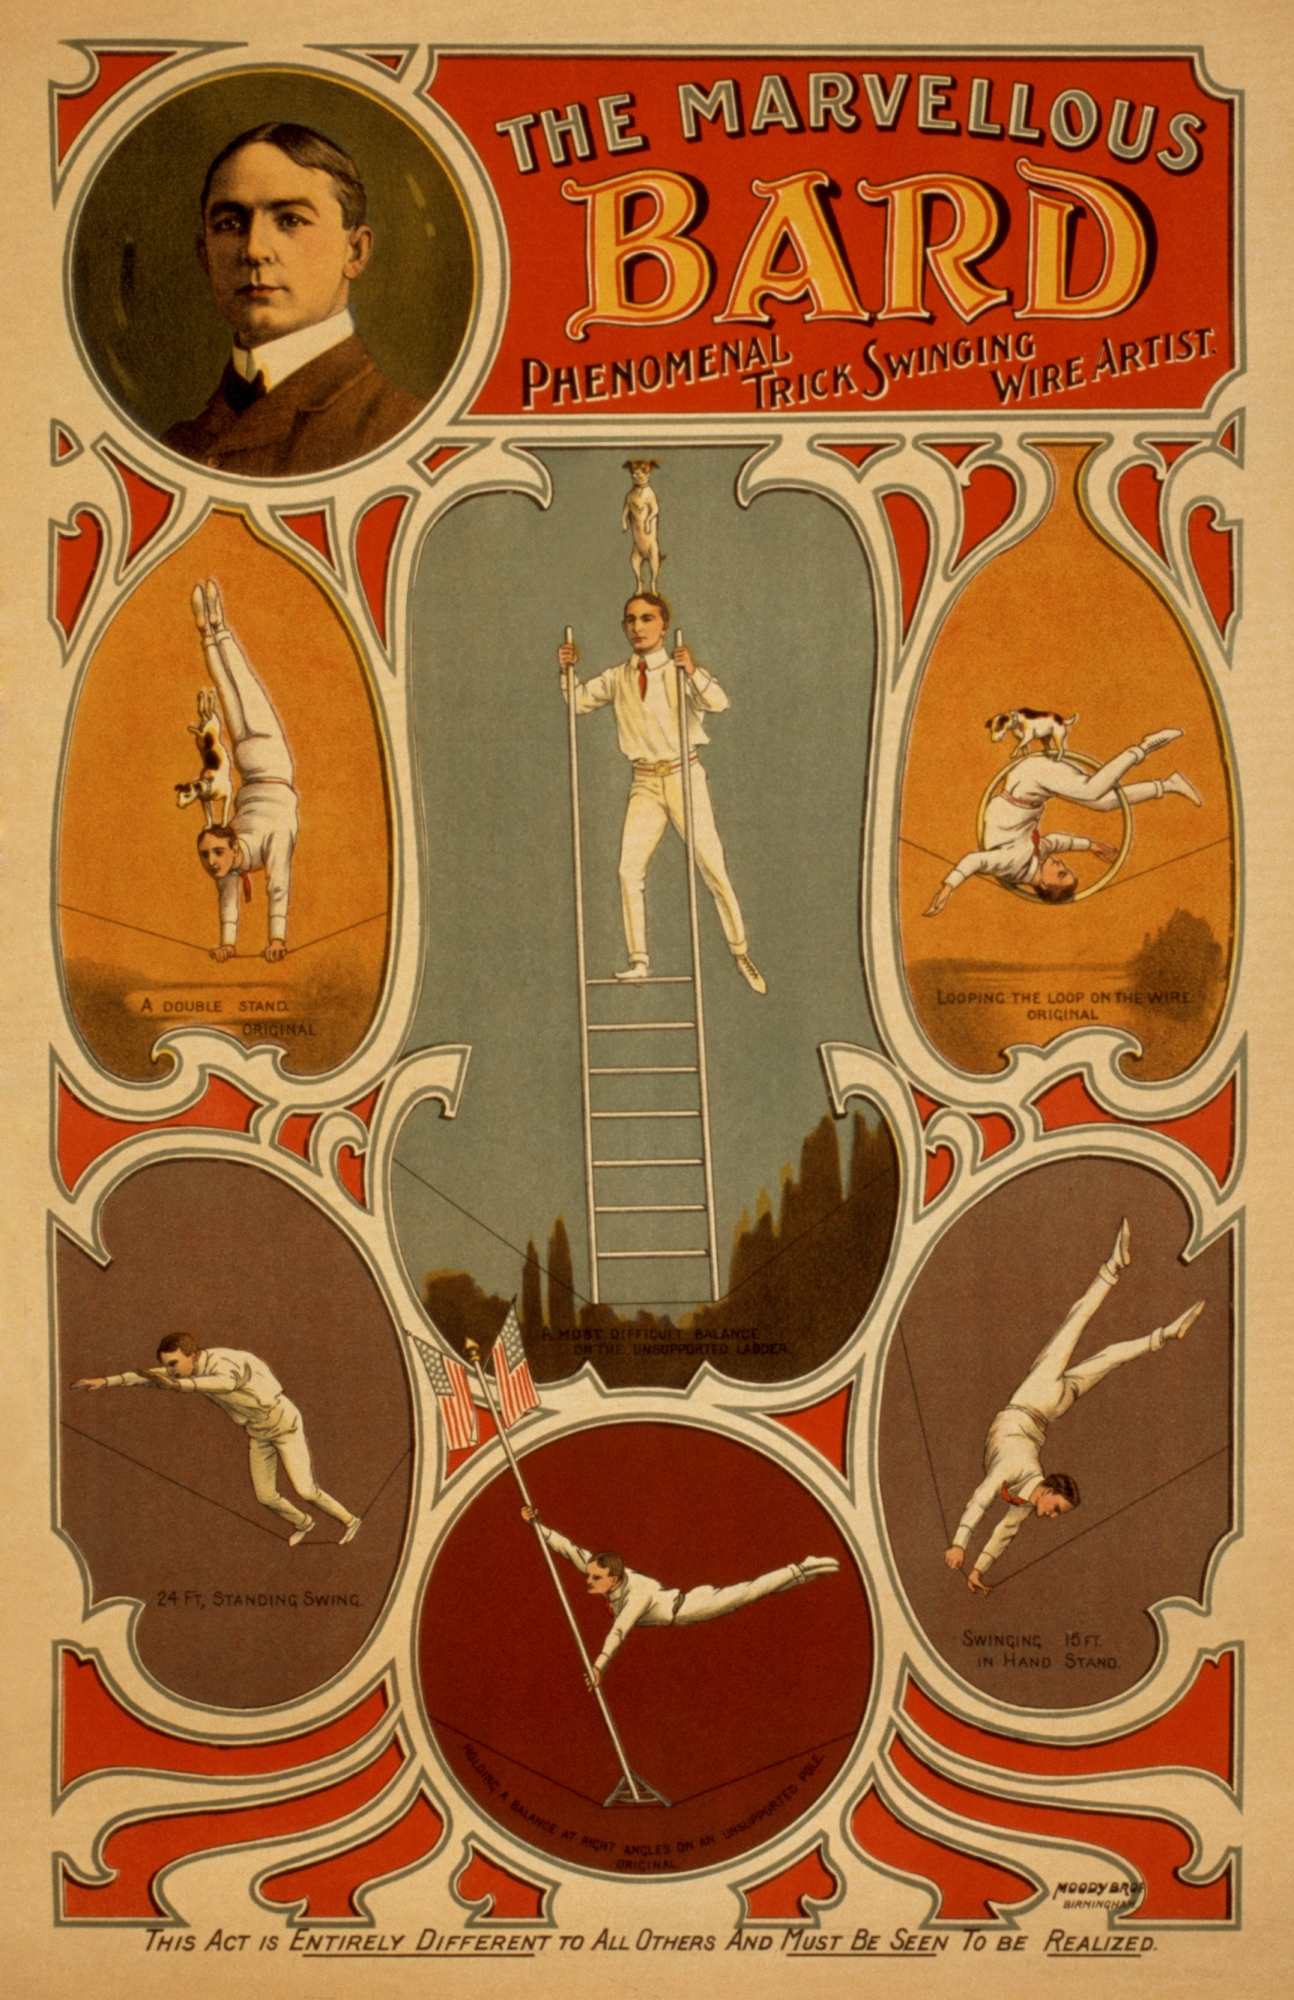 The Marvellous Bard | Vintage Circus Art & Vaudeville Poster ...